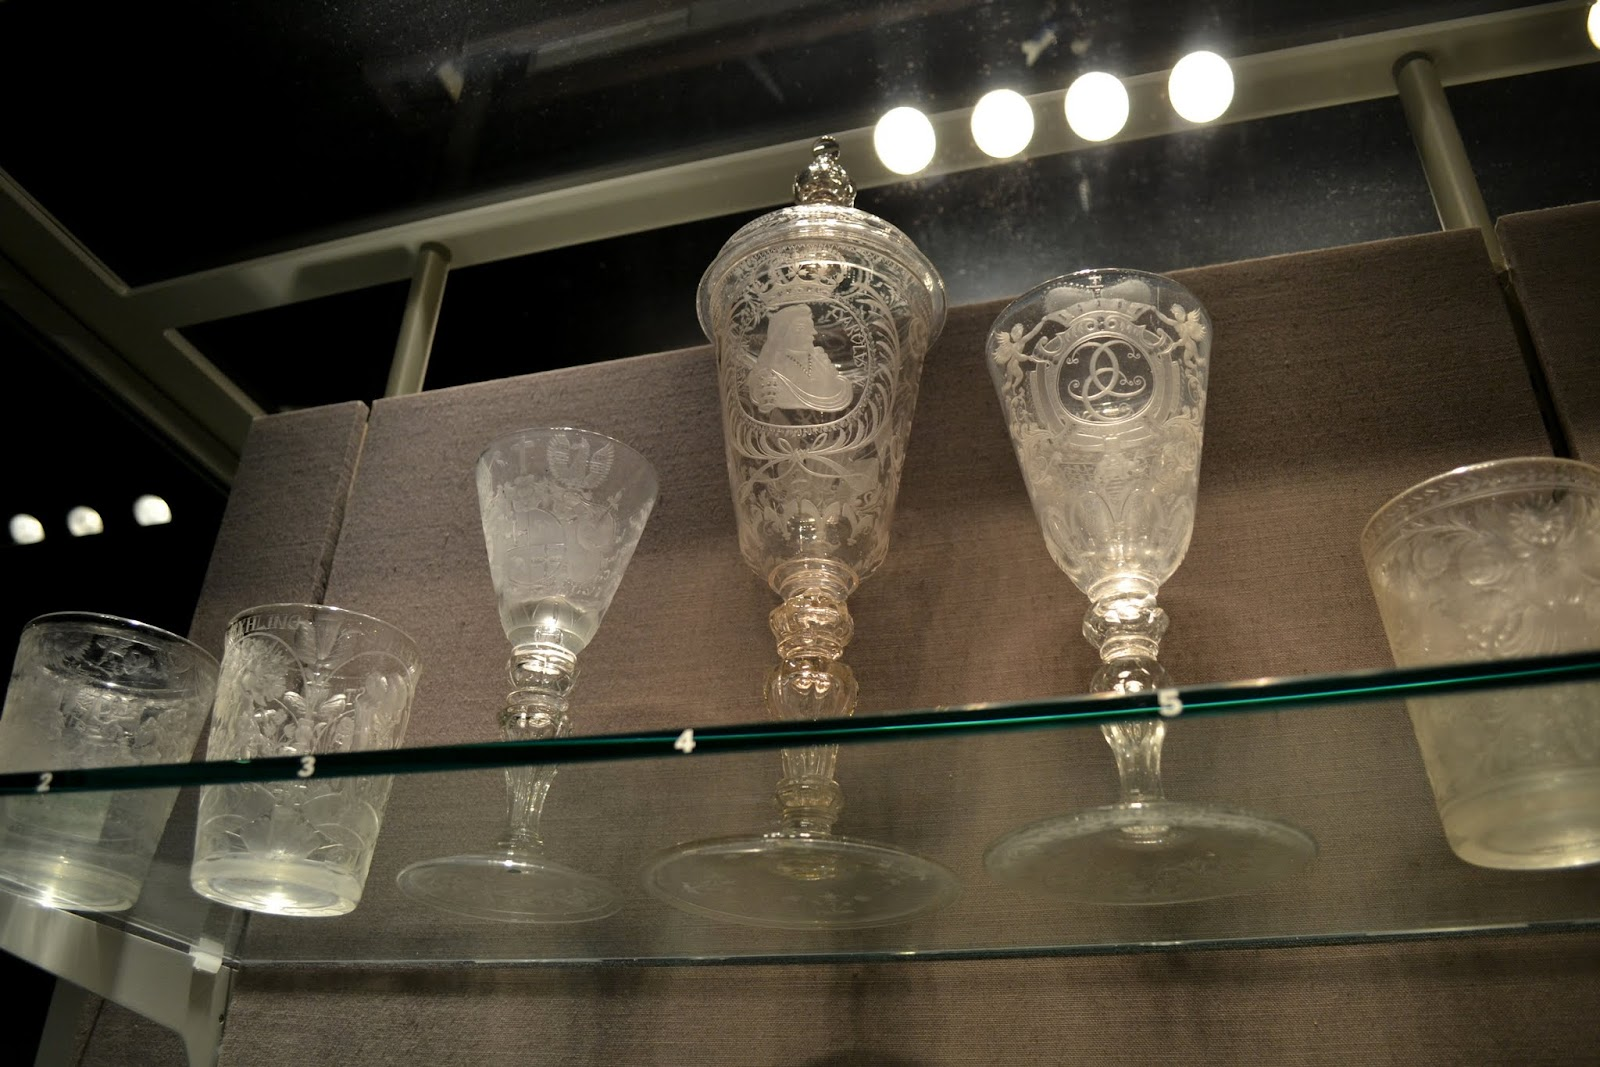 Музей стекла в Корнинг, штат Нью Йорк (Corning Museum of Glass, Corning, New York)